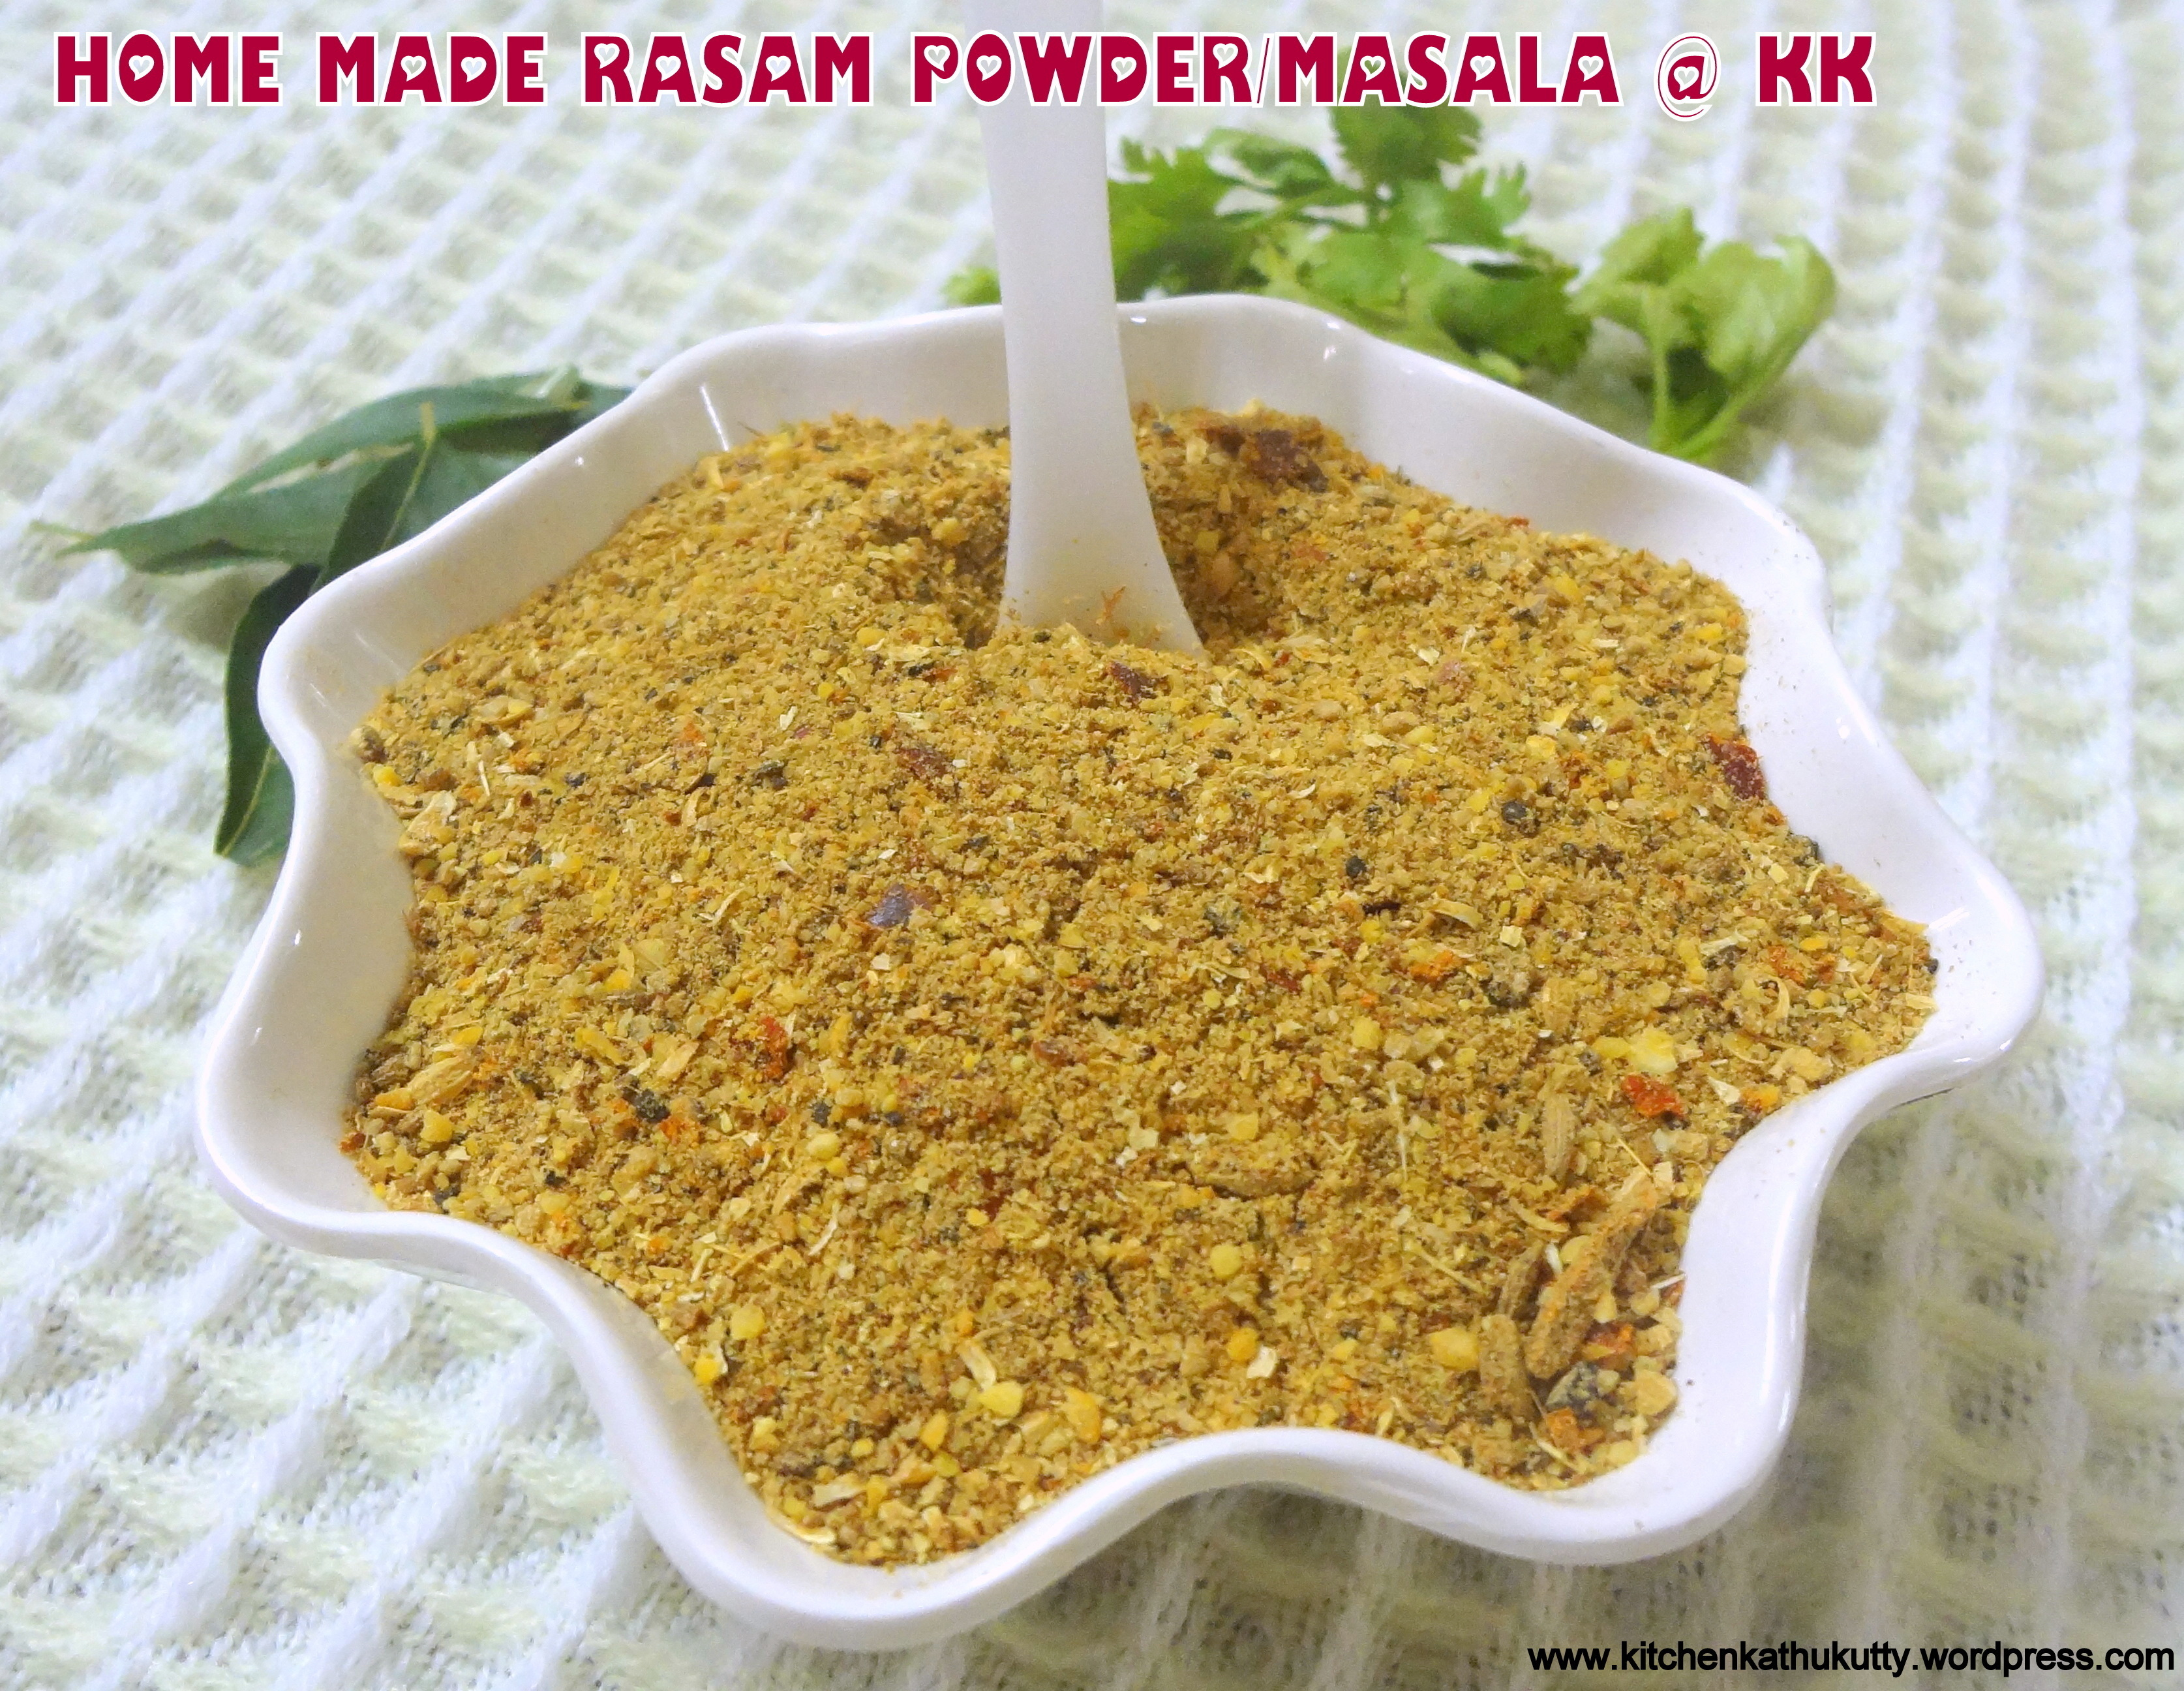 HOME MADE RASAM POWDER|RASAM POWDER/MASALA/PODI RECIPE